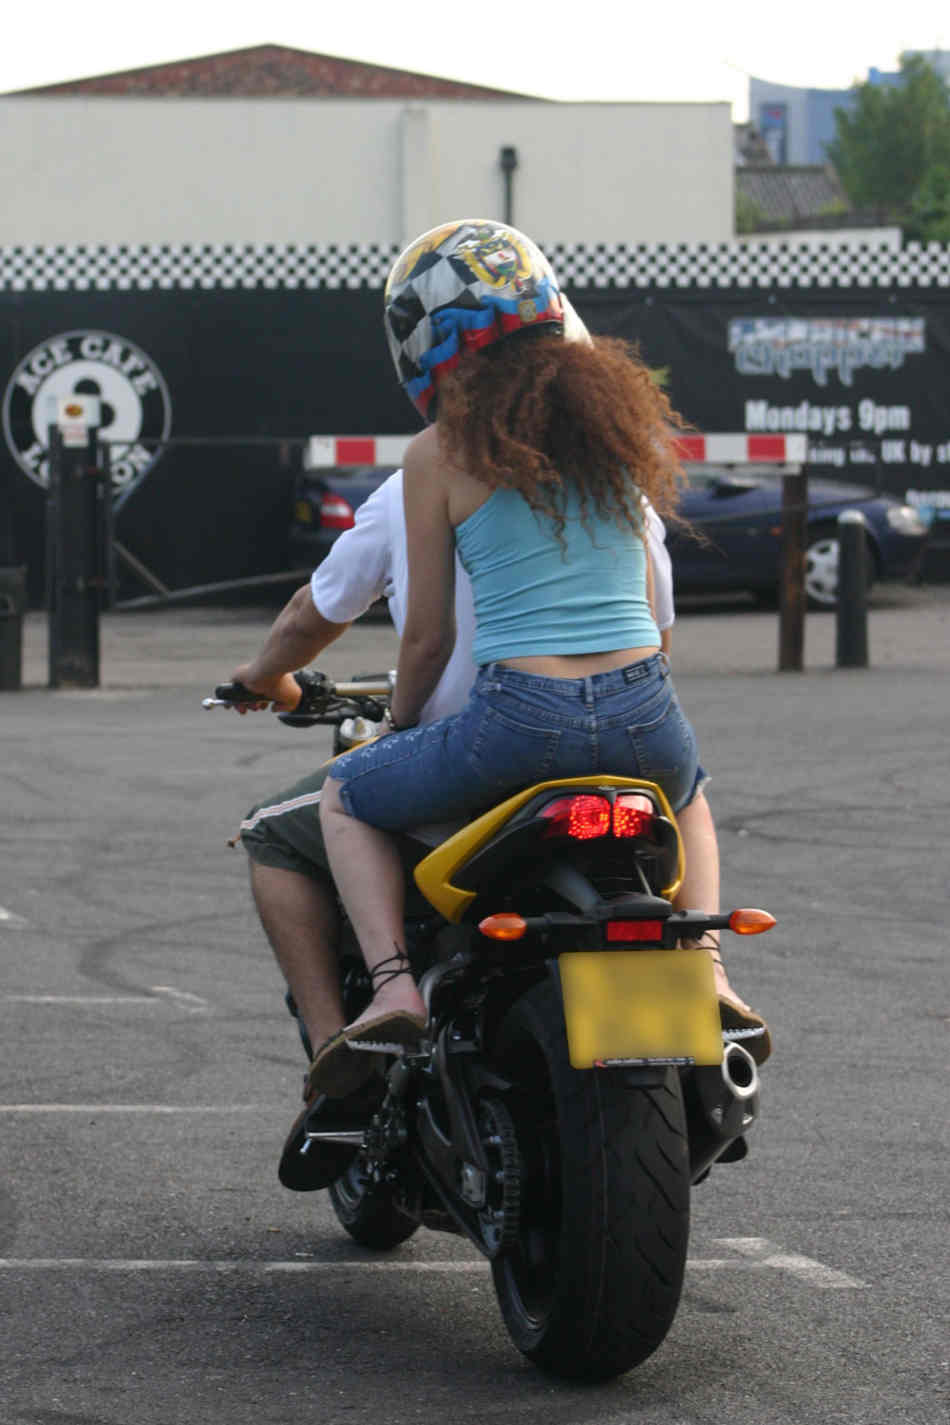 Couple riding a sports bike in the car park of the Ace cafe, London, wearing t-shirts, shorts and sandals.